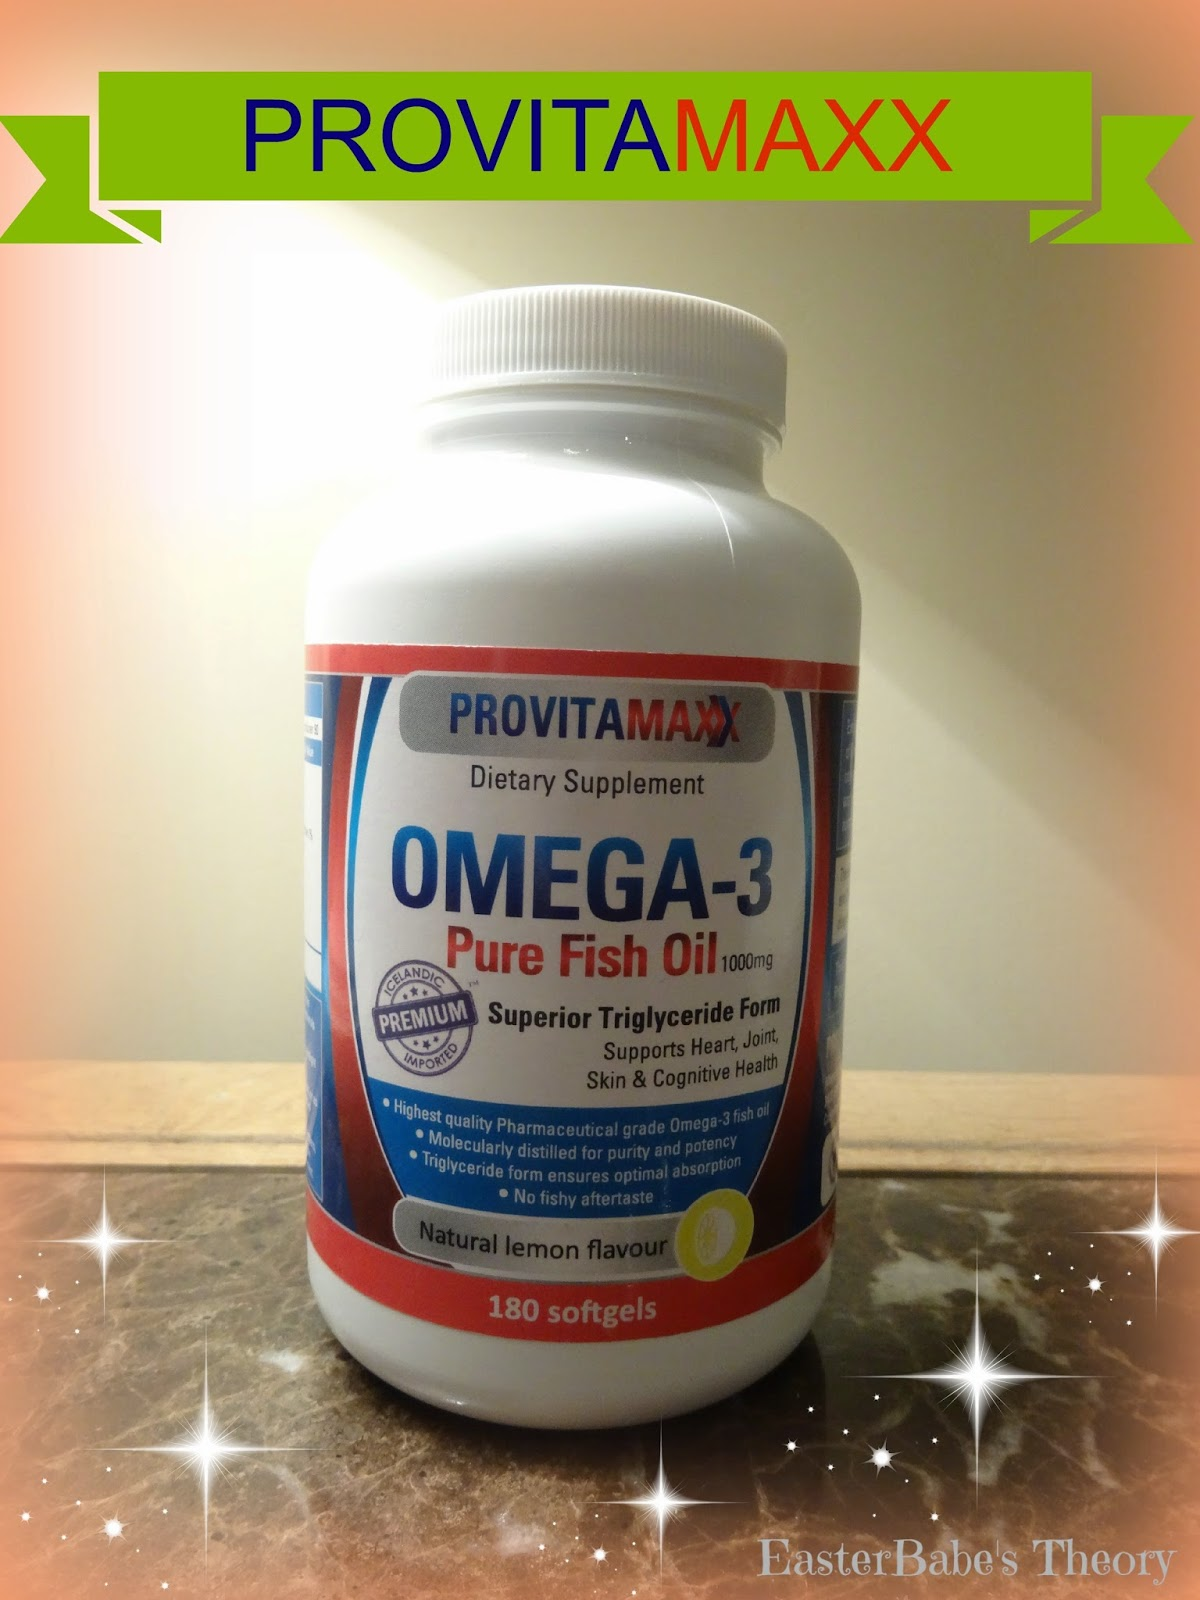 Easter babe 39 s theory provitamaxx omega 3 fish oil giveaway for Fish oil omega 3 benefits